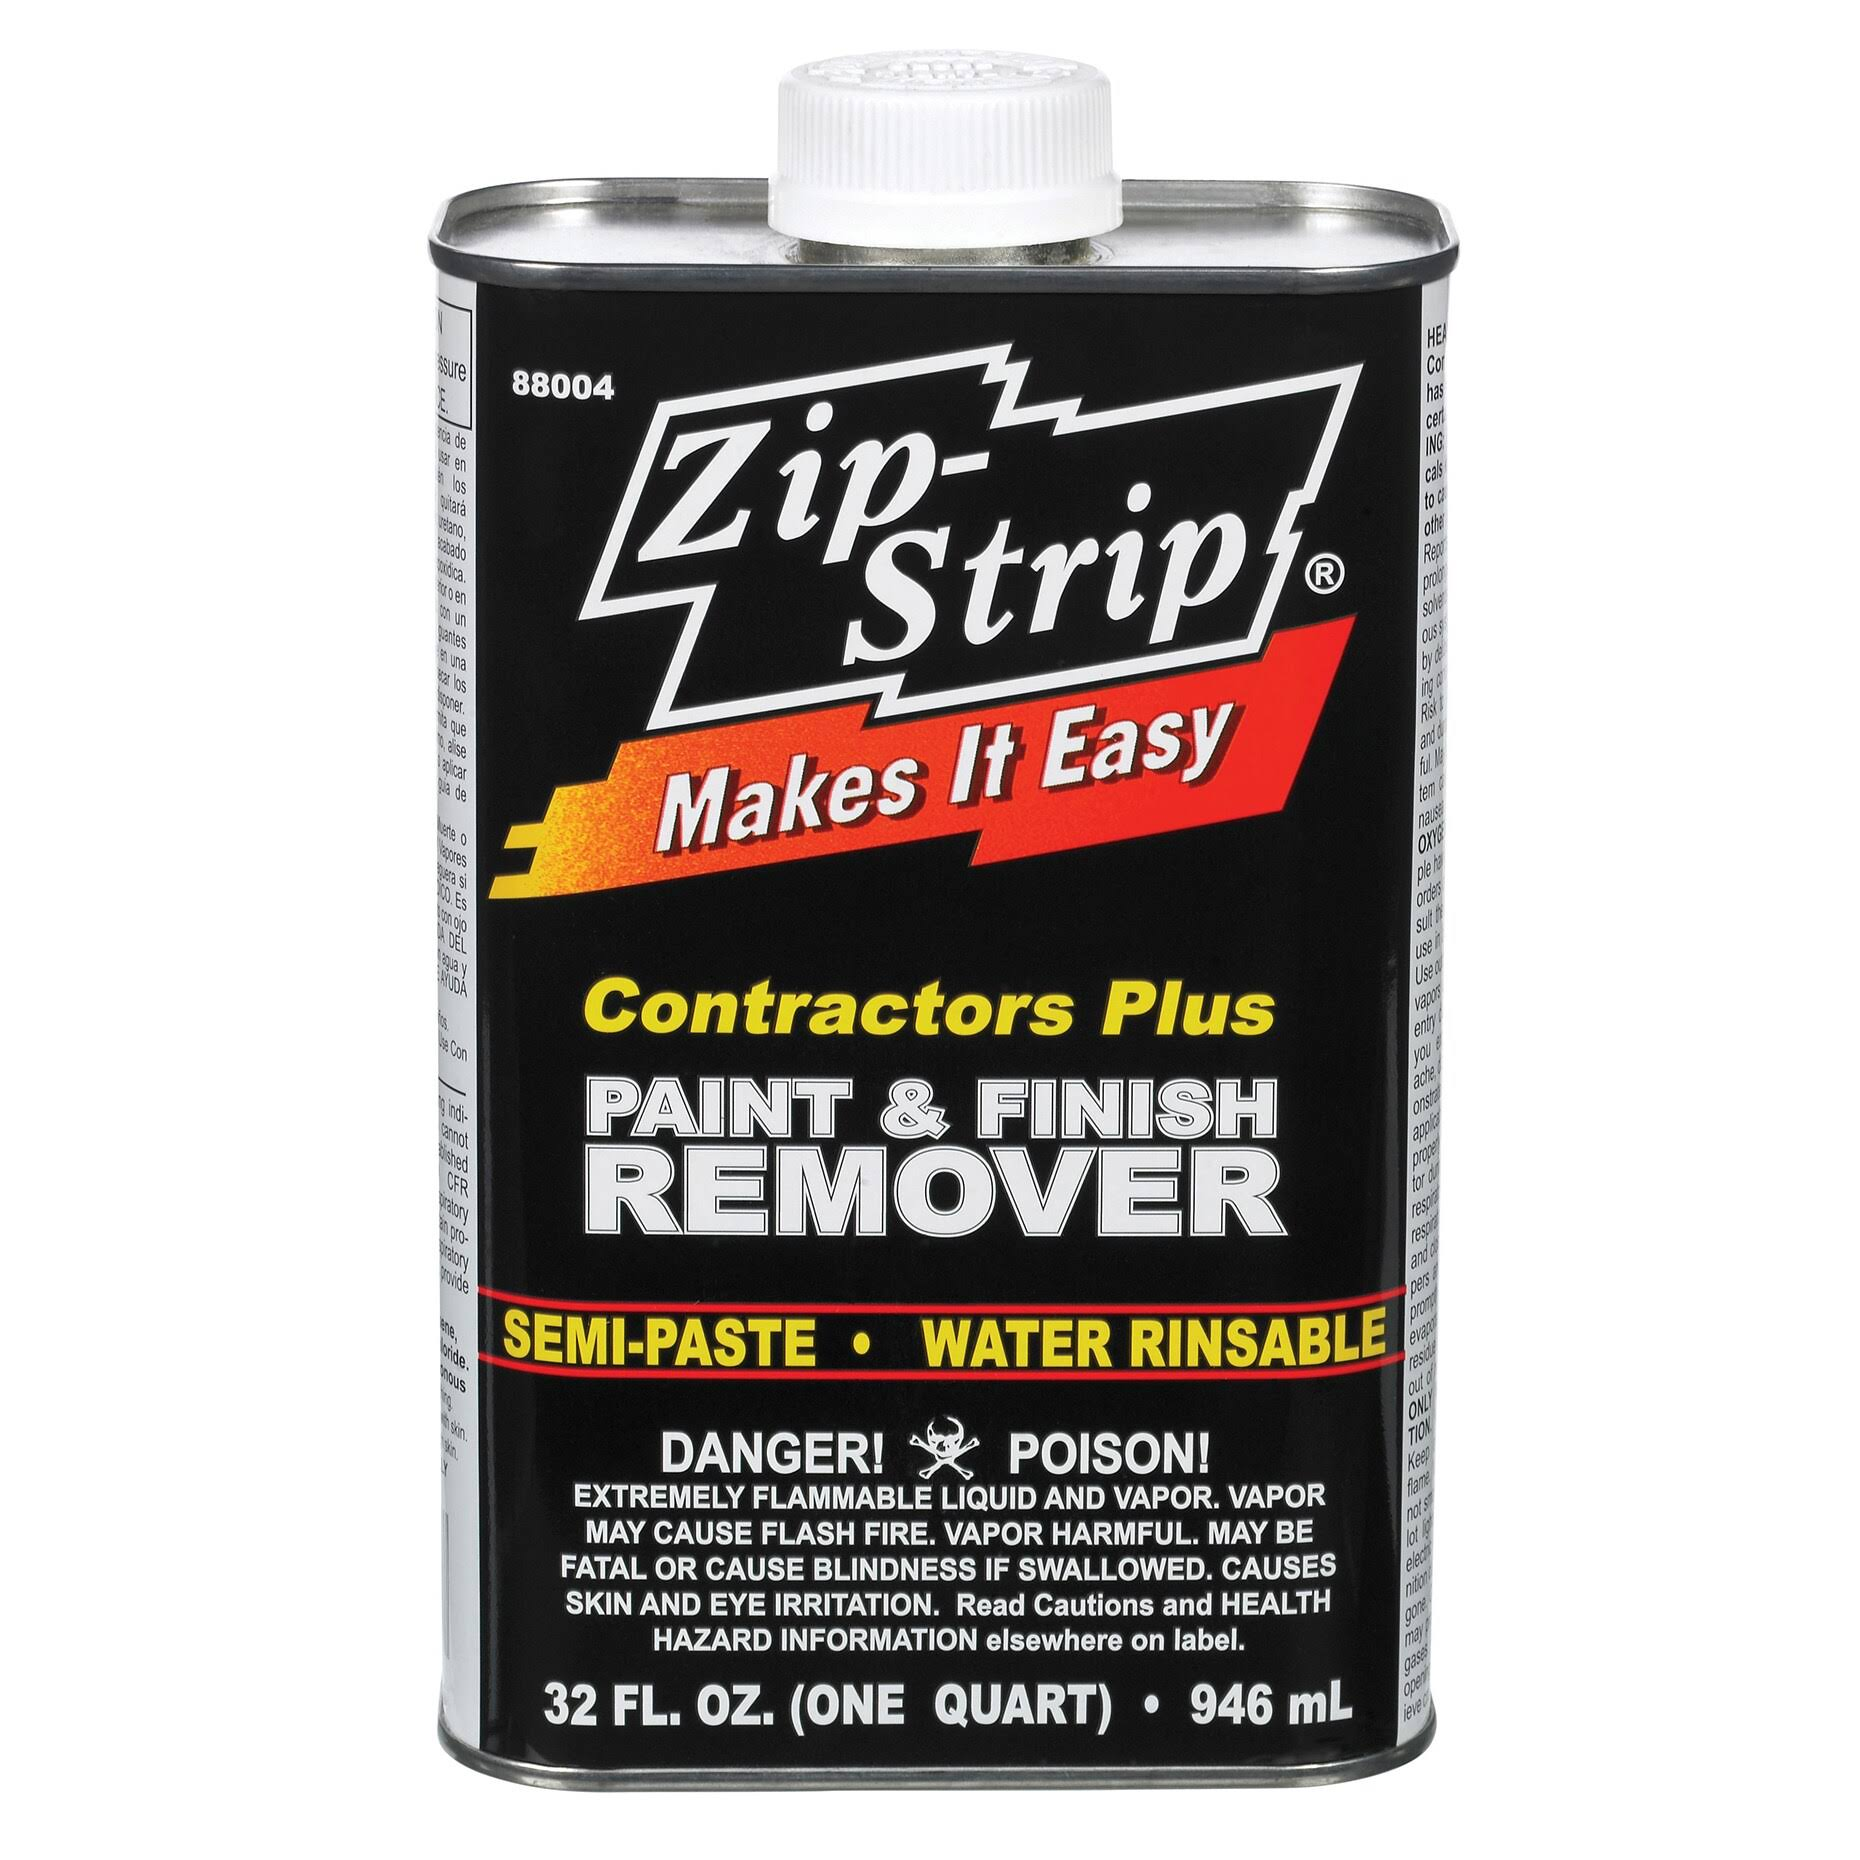 Zip-Strip Paint & Finish Remover - 946ml